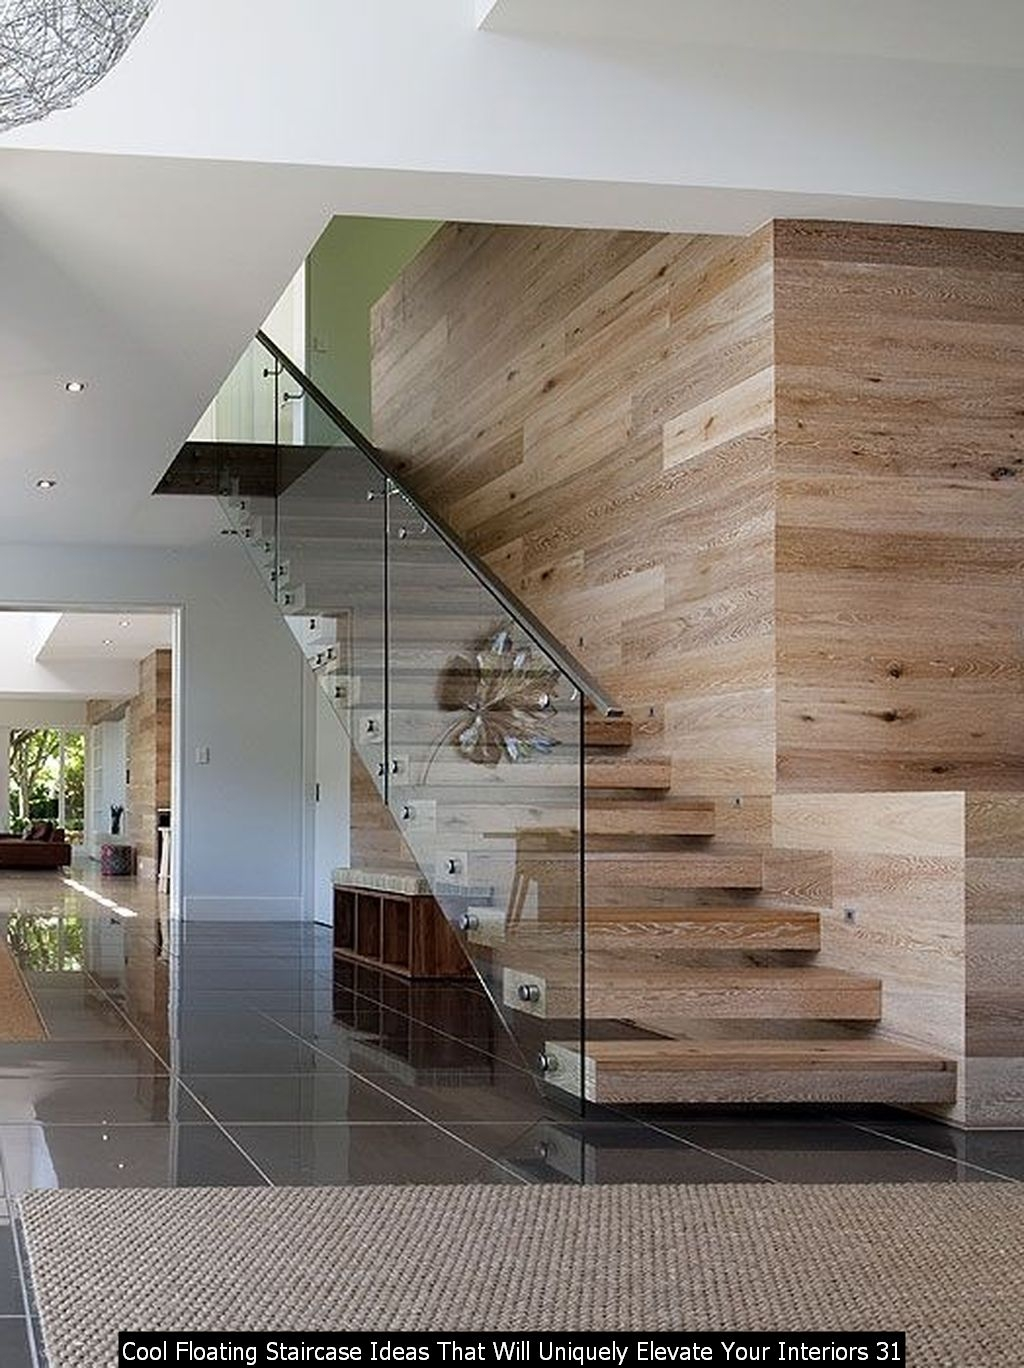 Cool Floating Staircase Ideas That Will Uniquely Elevate Your Interiors 31